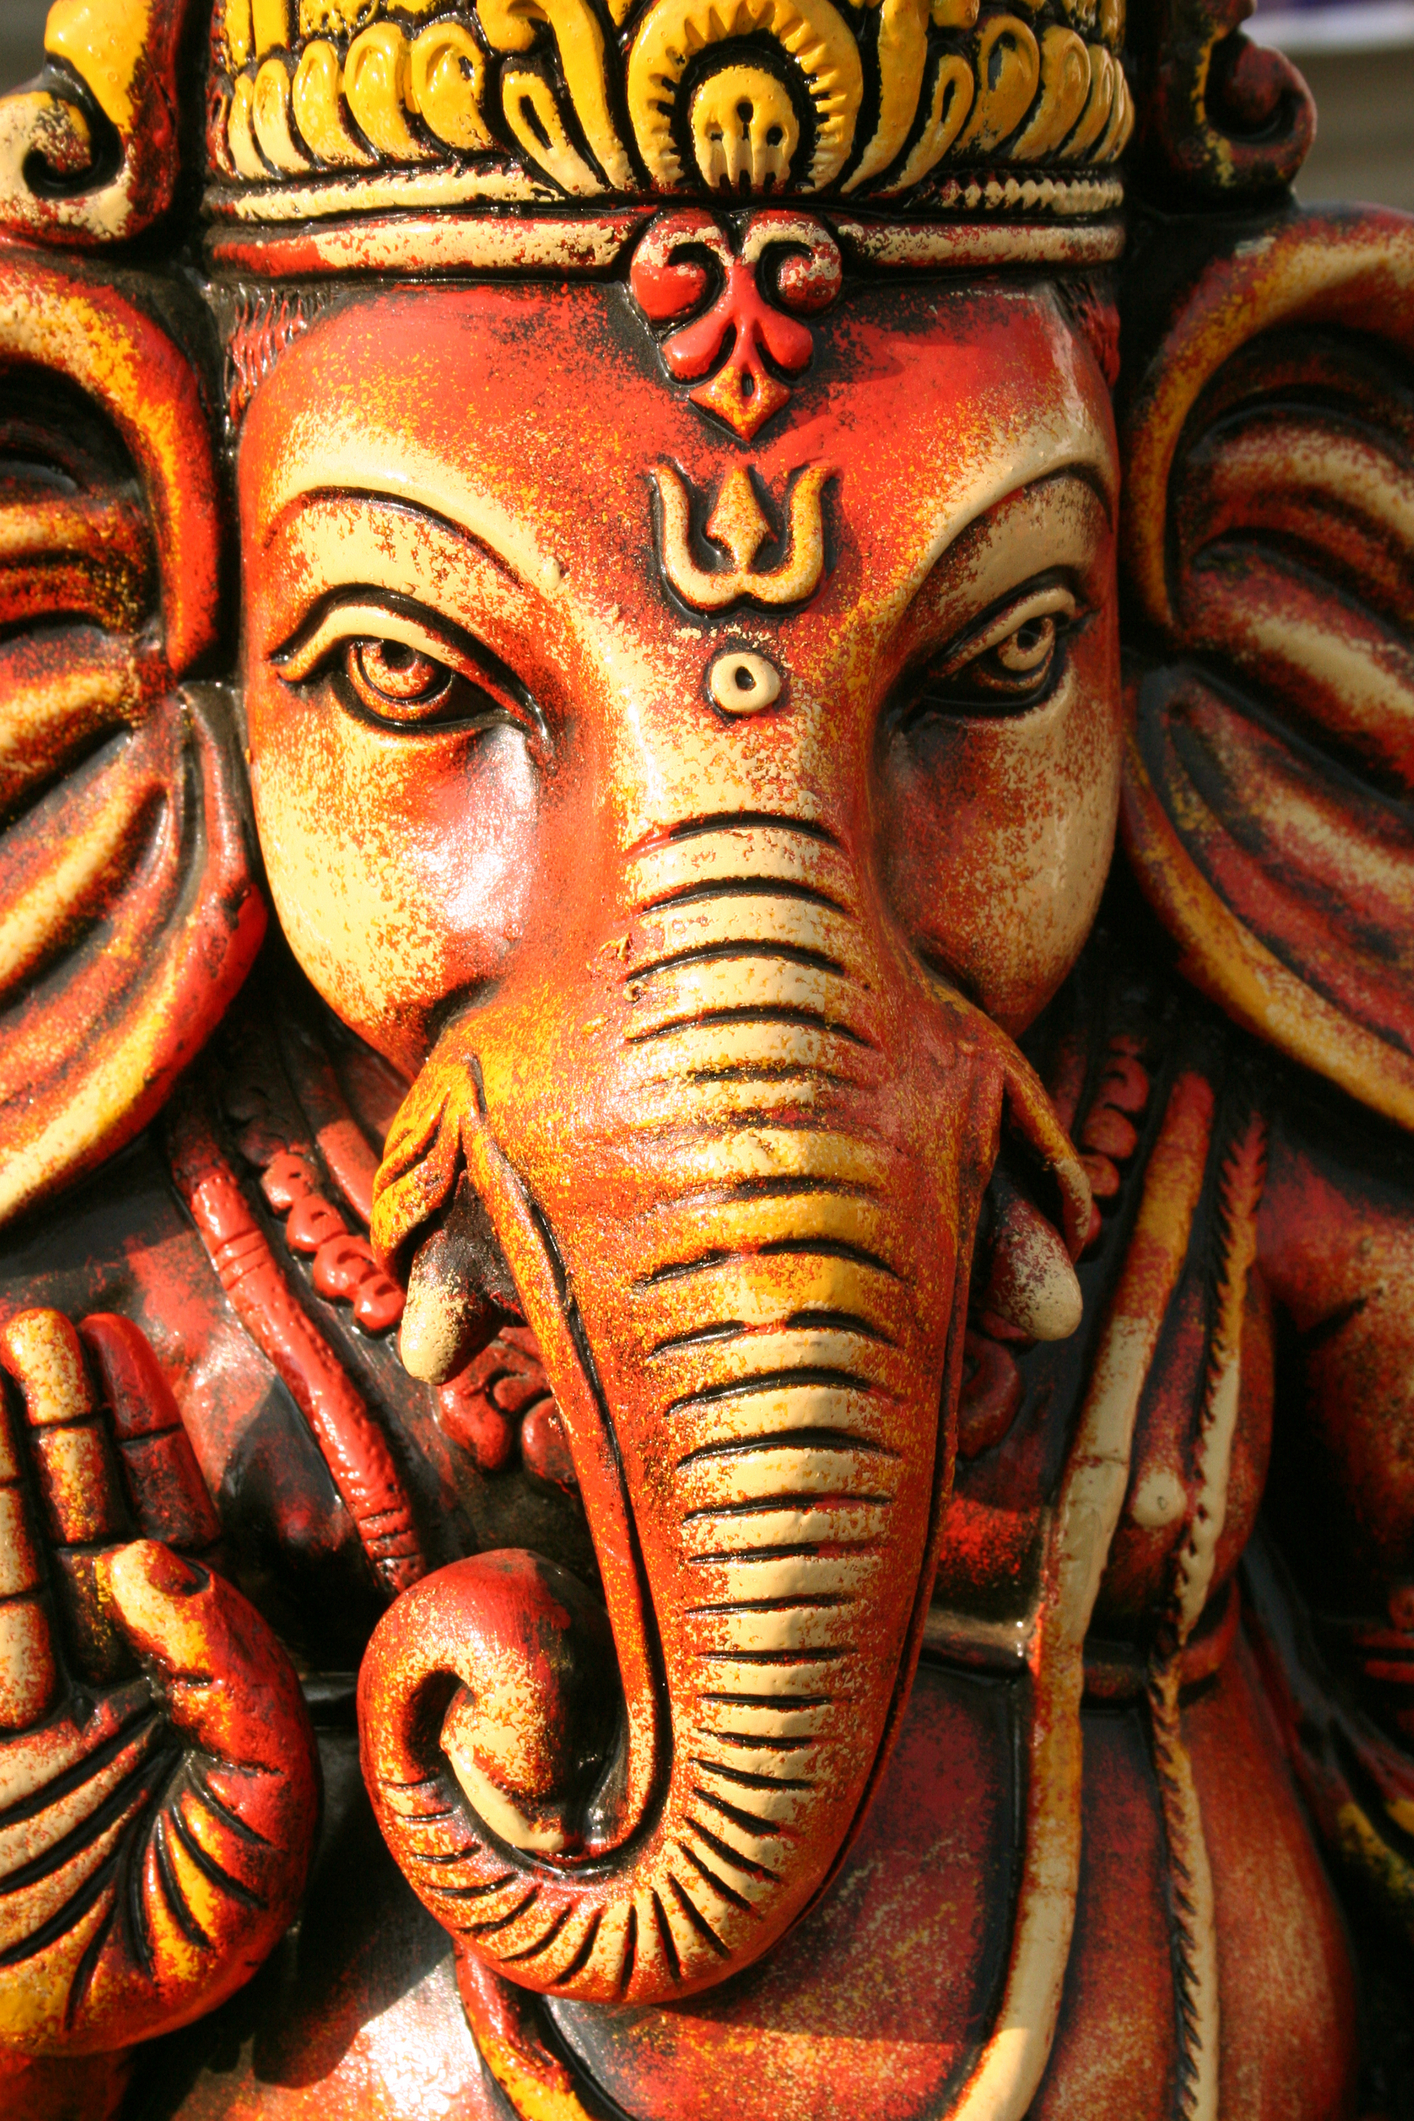 The god Ganesh, the bringer of good luck and remover of obstacles